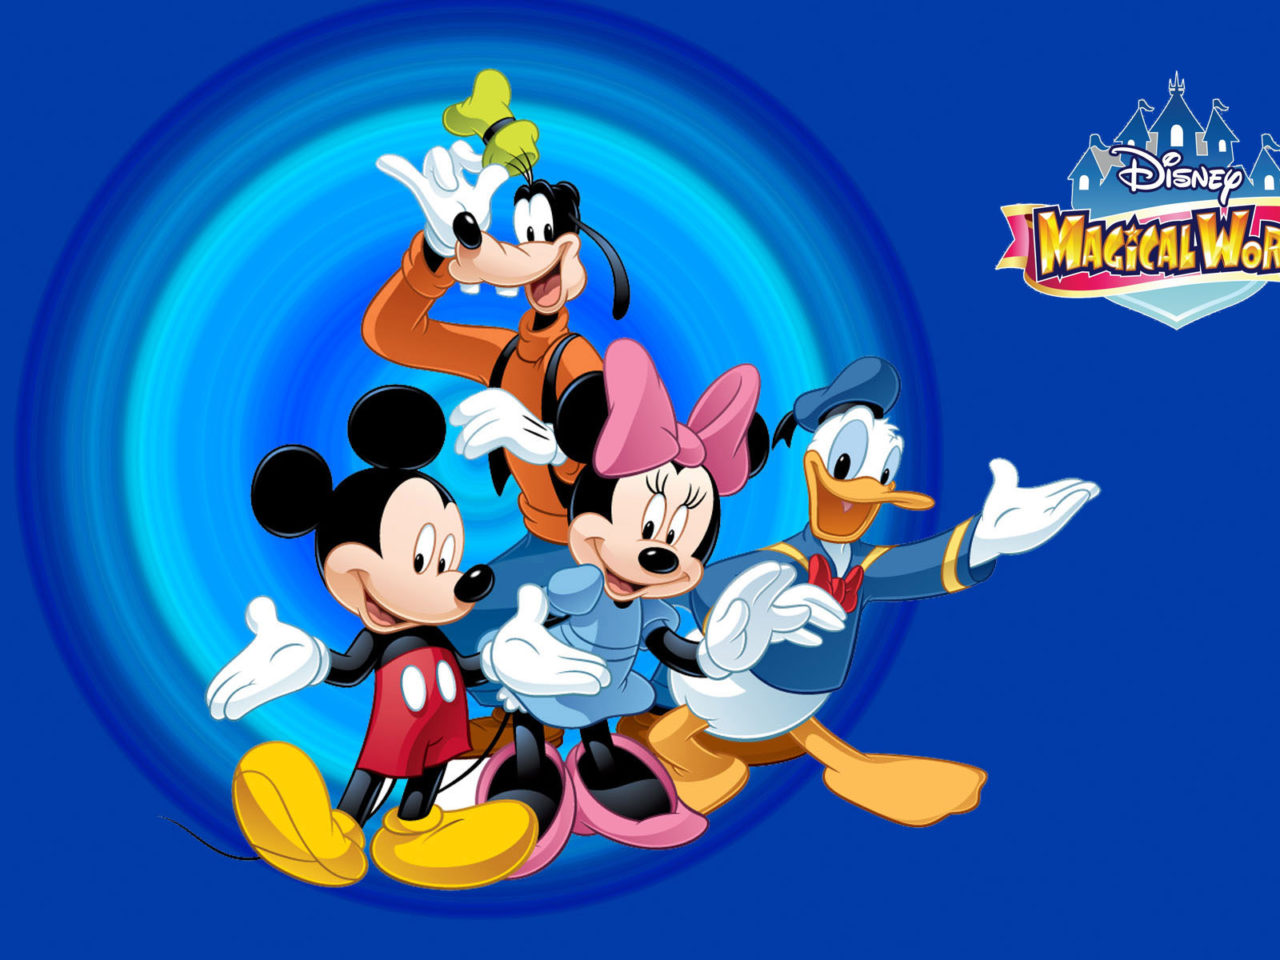 Walt Disney World Iphone Wallpaper Disney Magical World Mickey Mouse Cartoon Hd Wallpaper